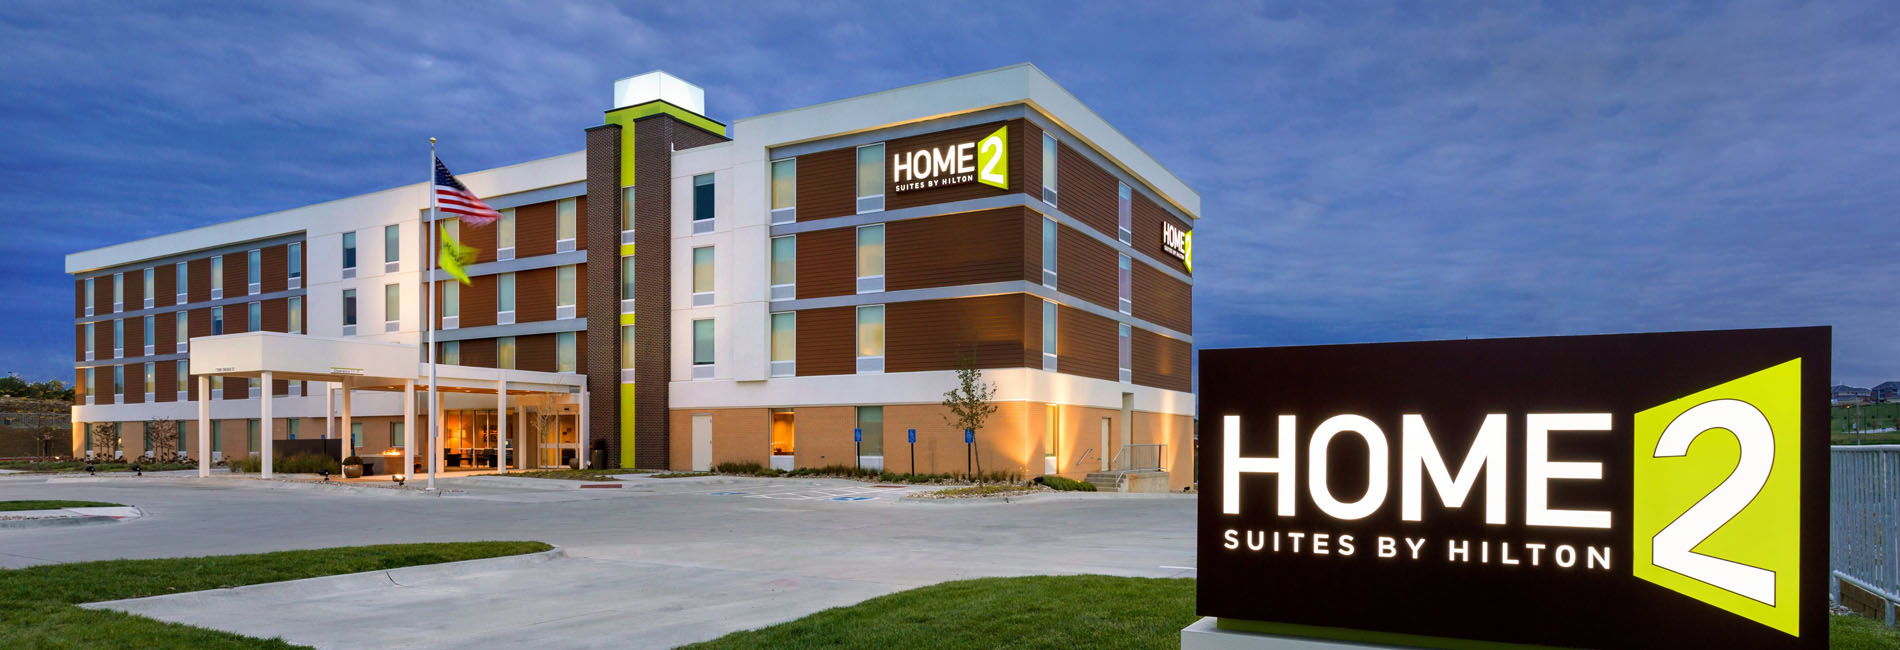 Home2 Suites By Hilton Brookfield Wi Kinseth